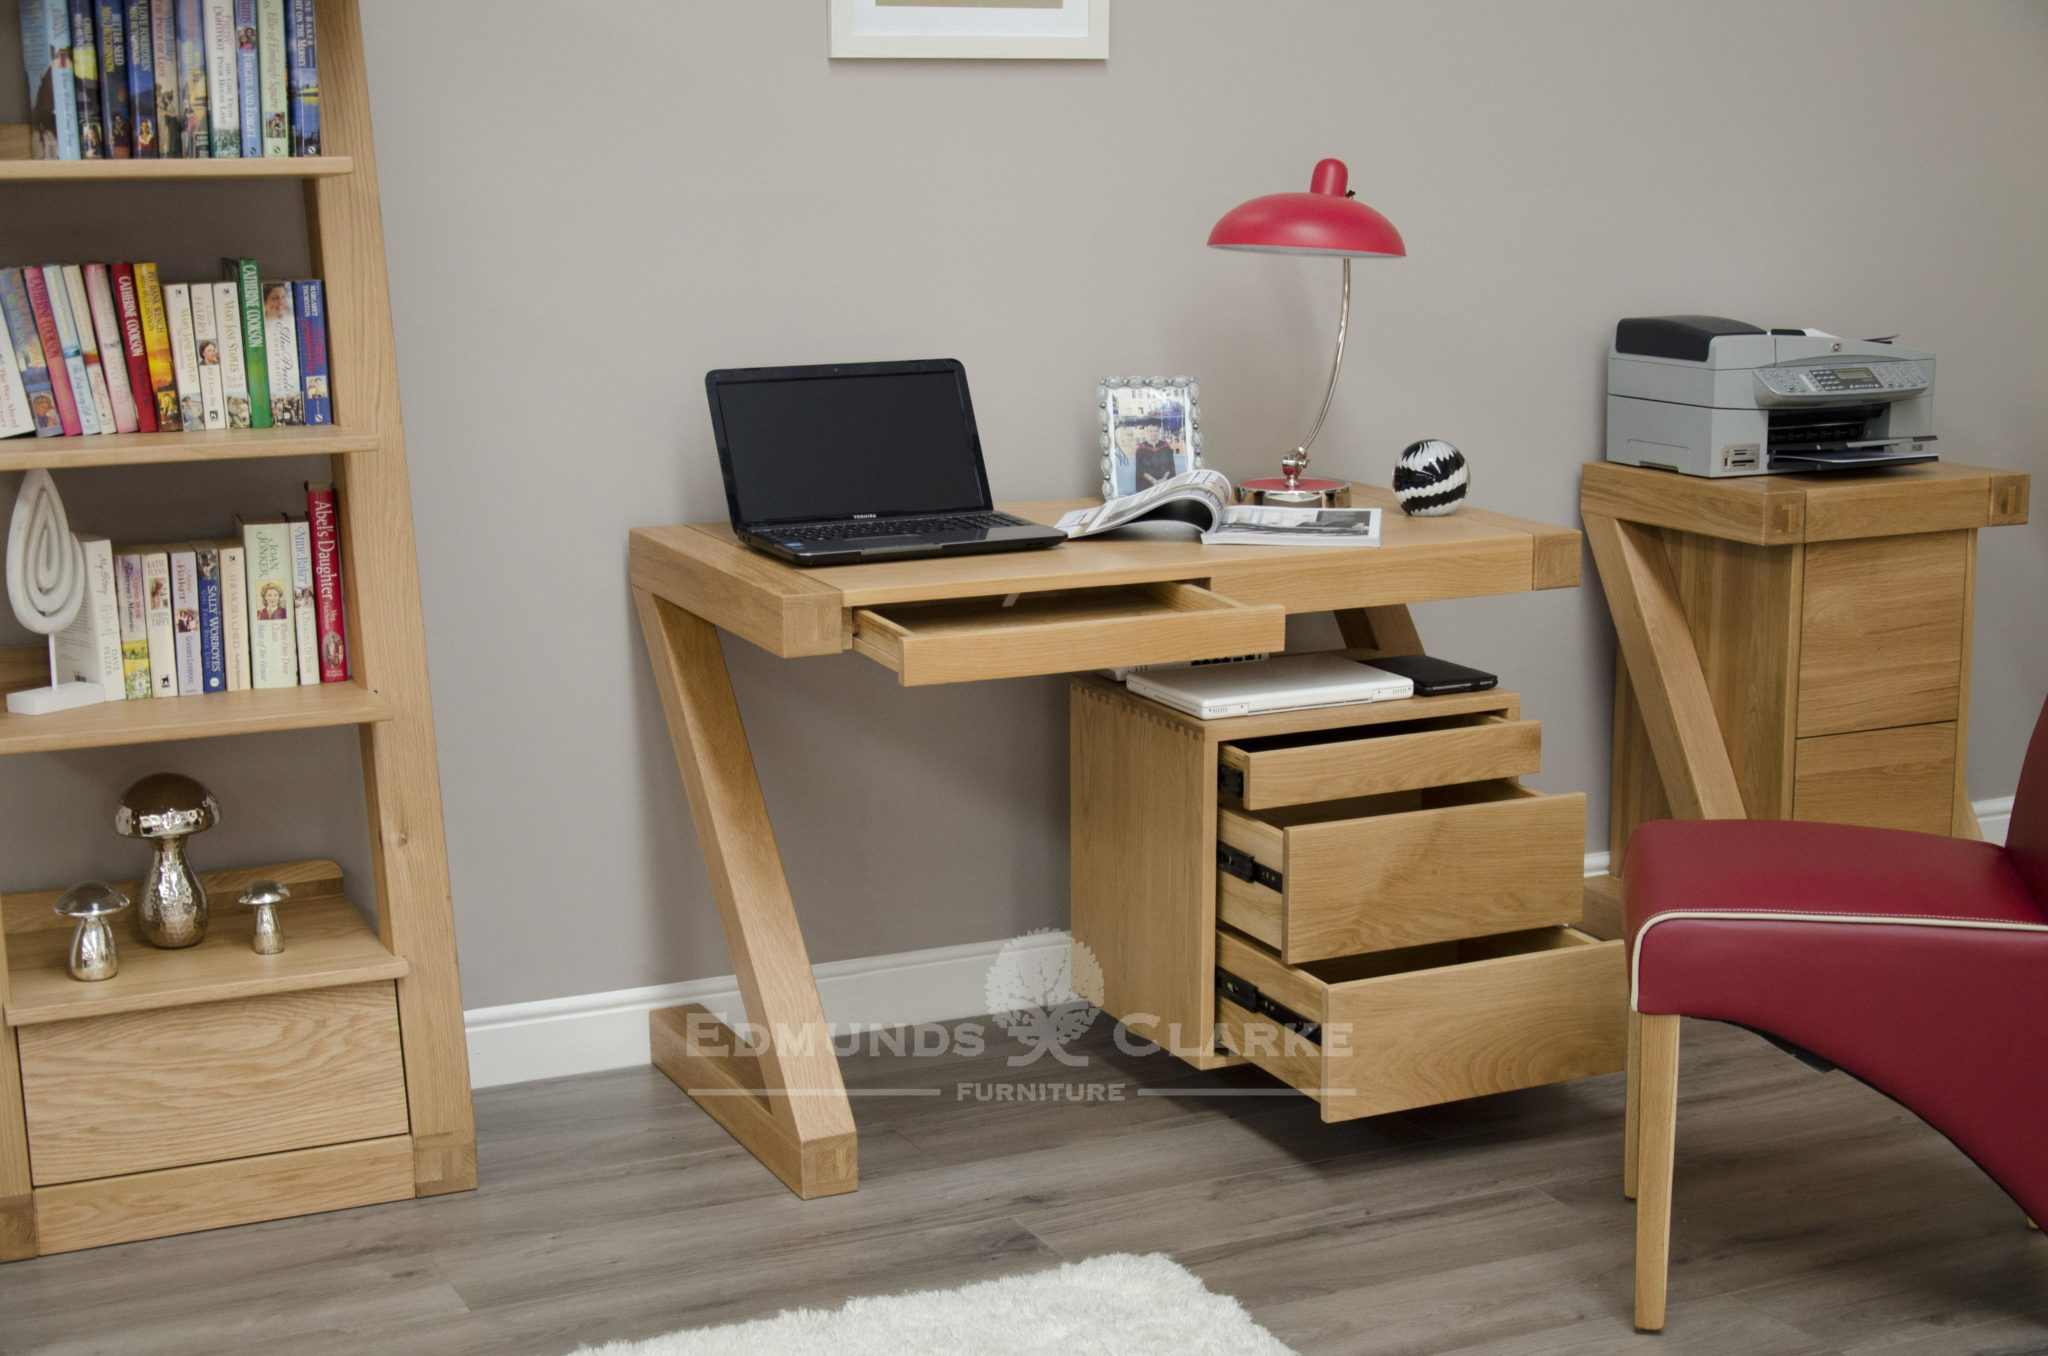 Z shape designer desk with left hand kneehole and three drawers on right